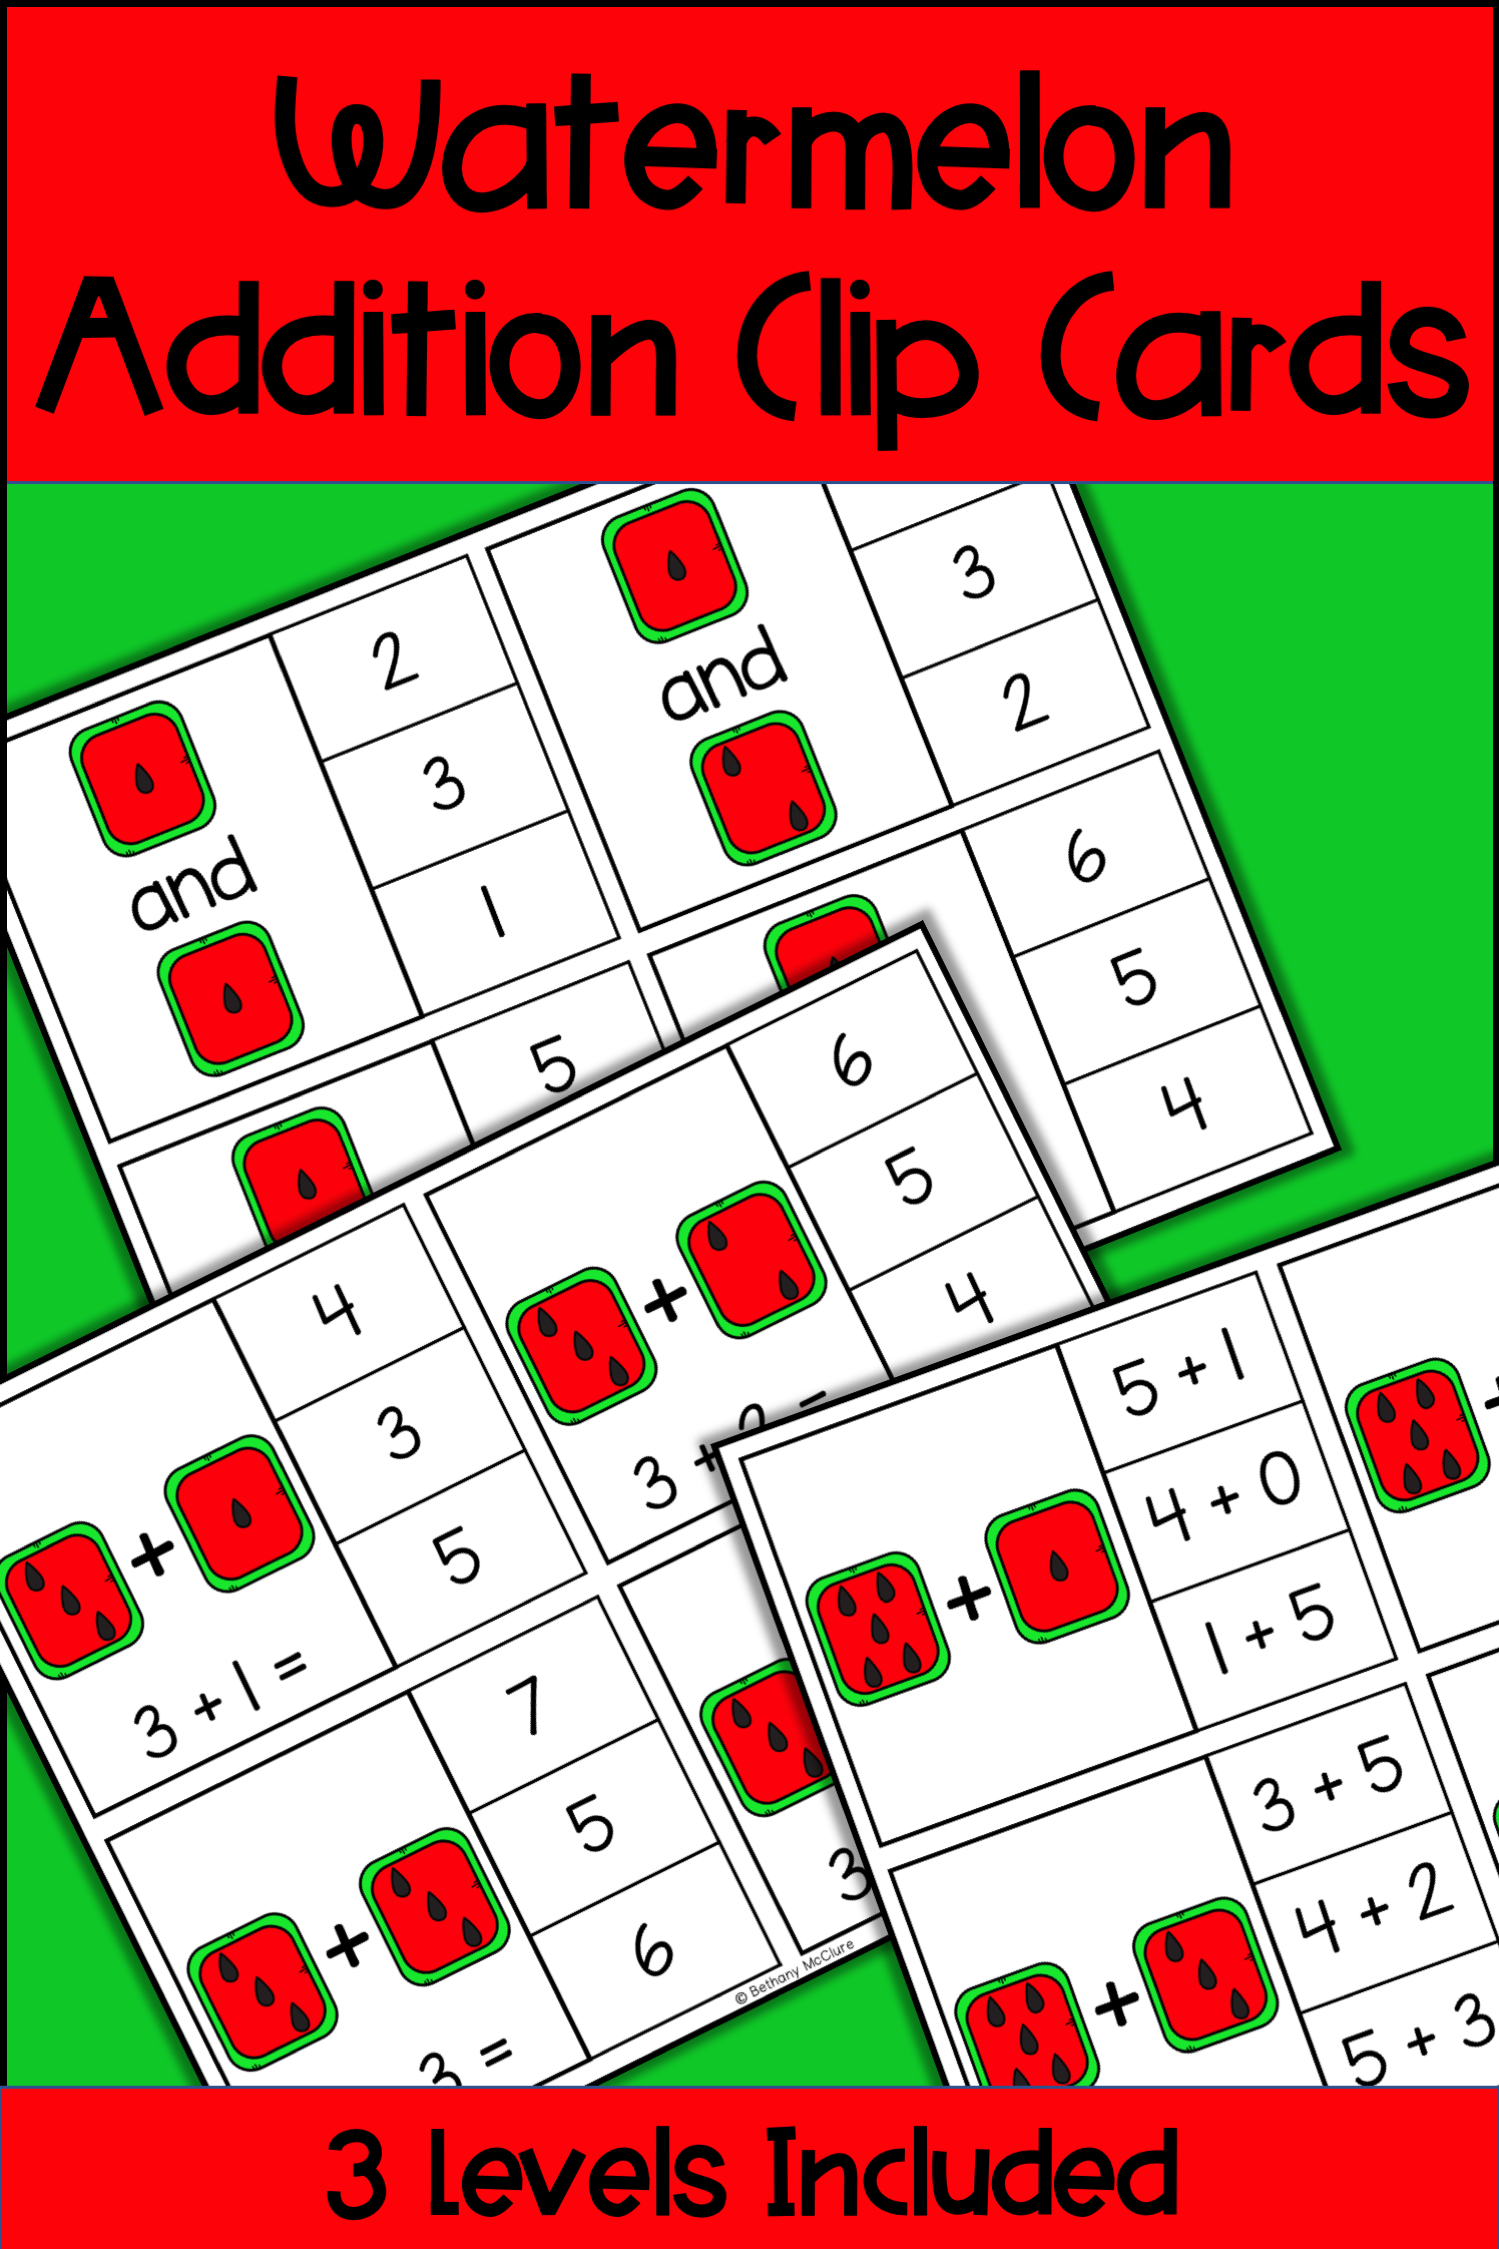 Watermelon Addition Clip Cards Differentiated Math Centers Differentiation Math Differentiated Math Centers Math Centers [ 2249 x 1499 Pixel ]